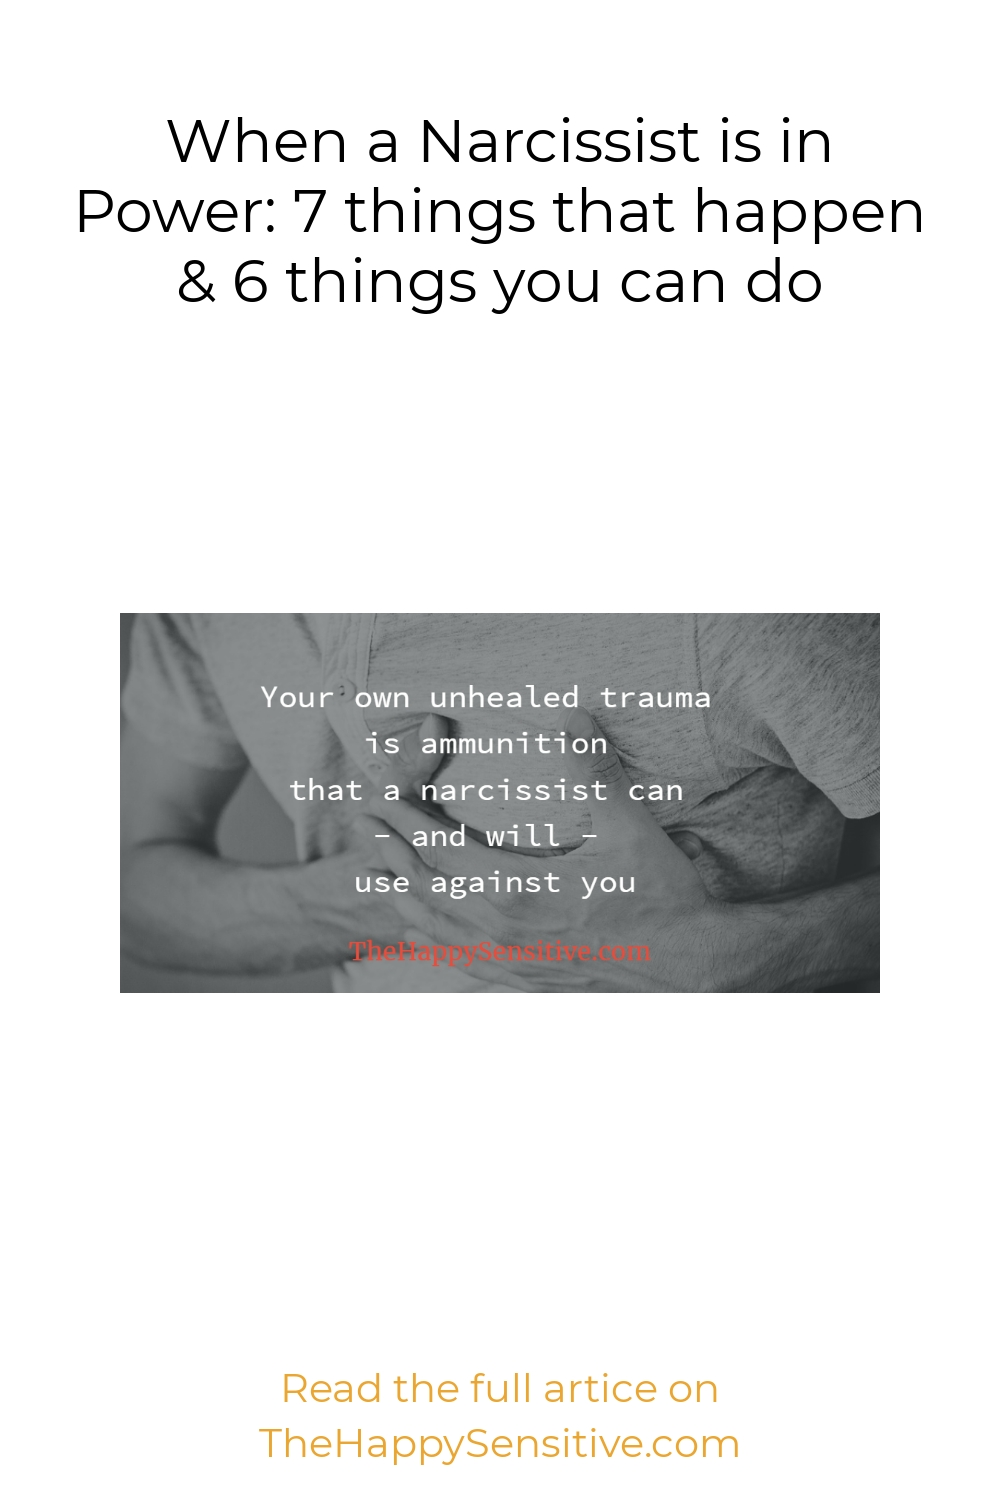 When a Narcissist is in Power: 7 things that happen & 6 things you can do